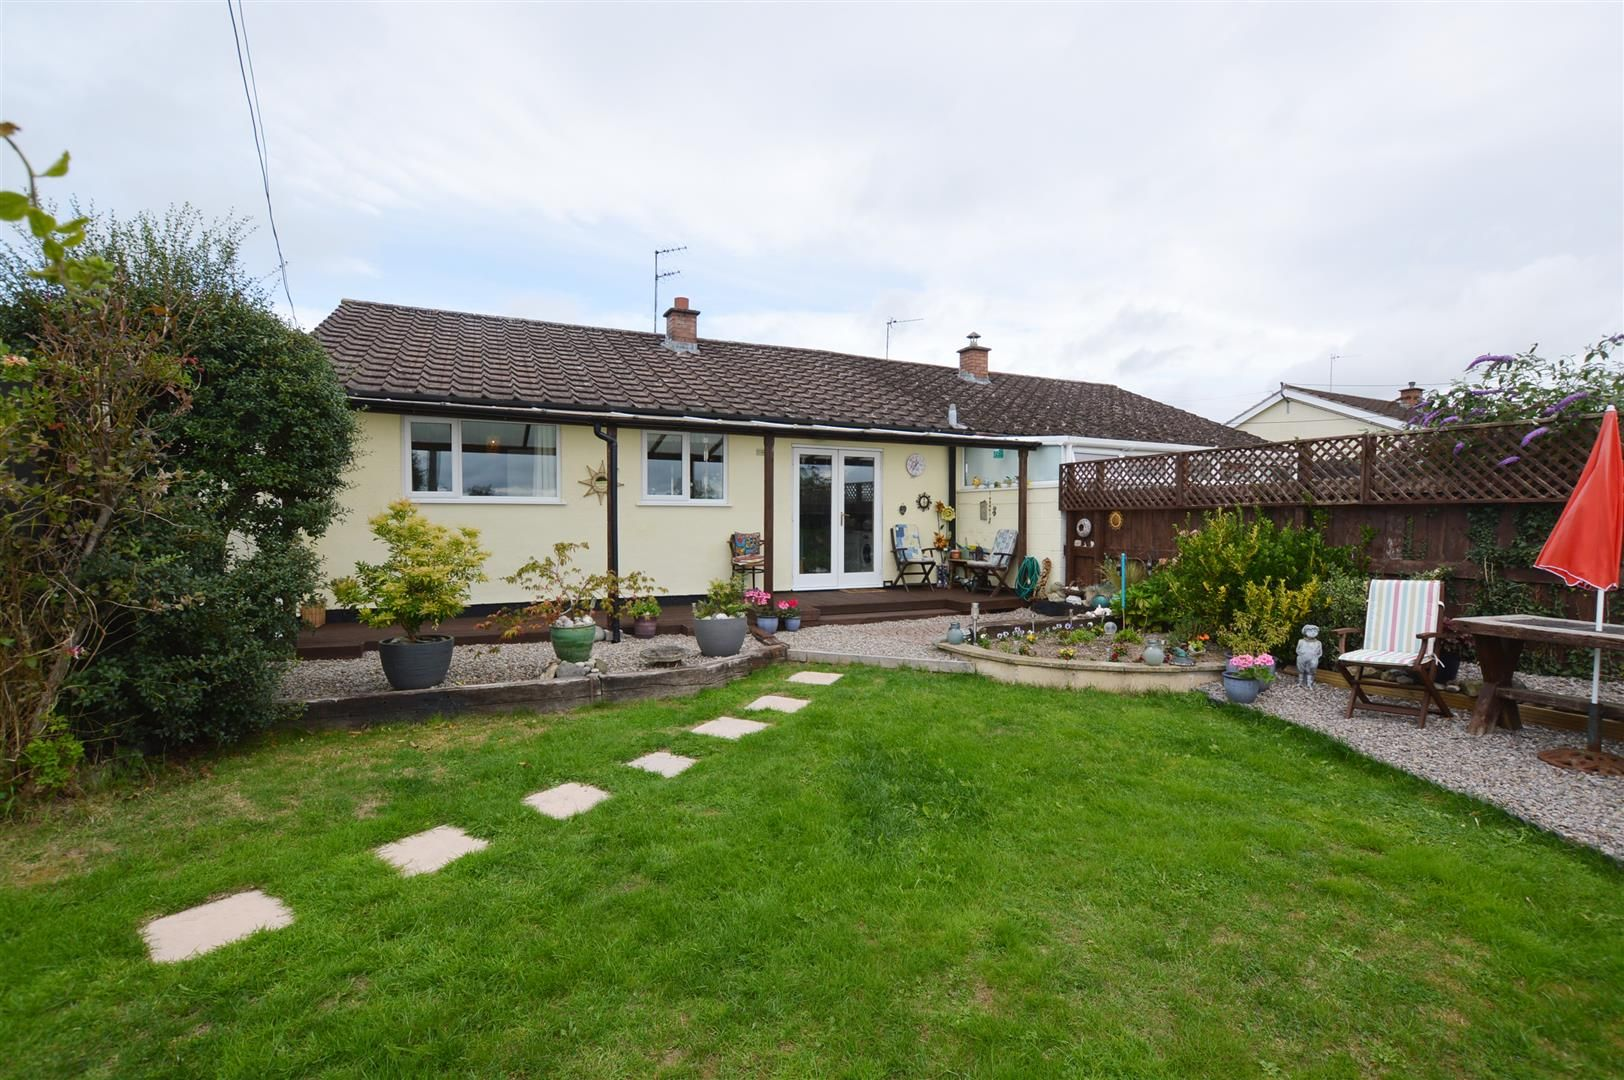 3 bed semi-detached-bungalow for sale in Shobdon  - Property Image 9